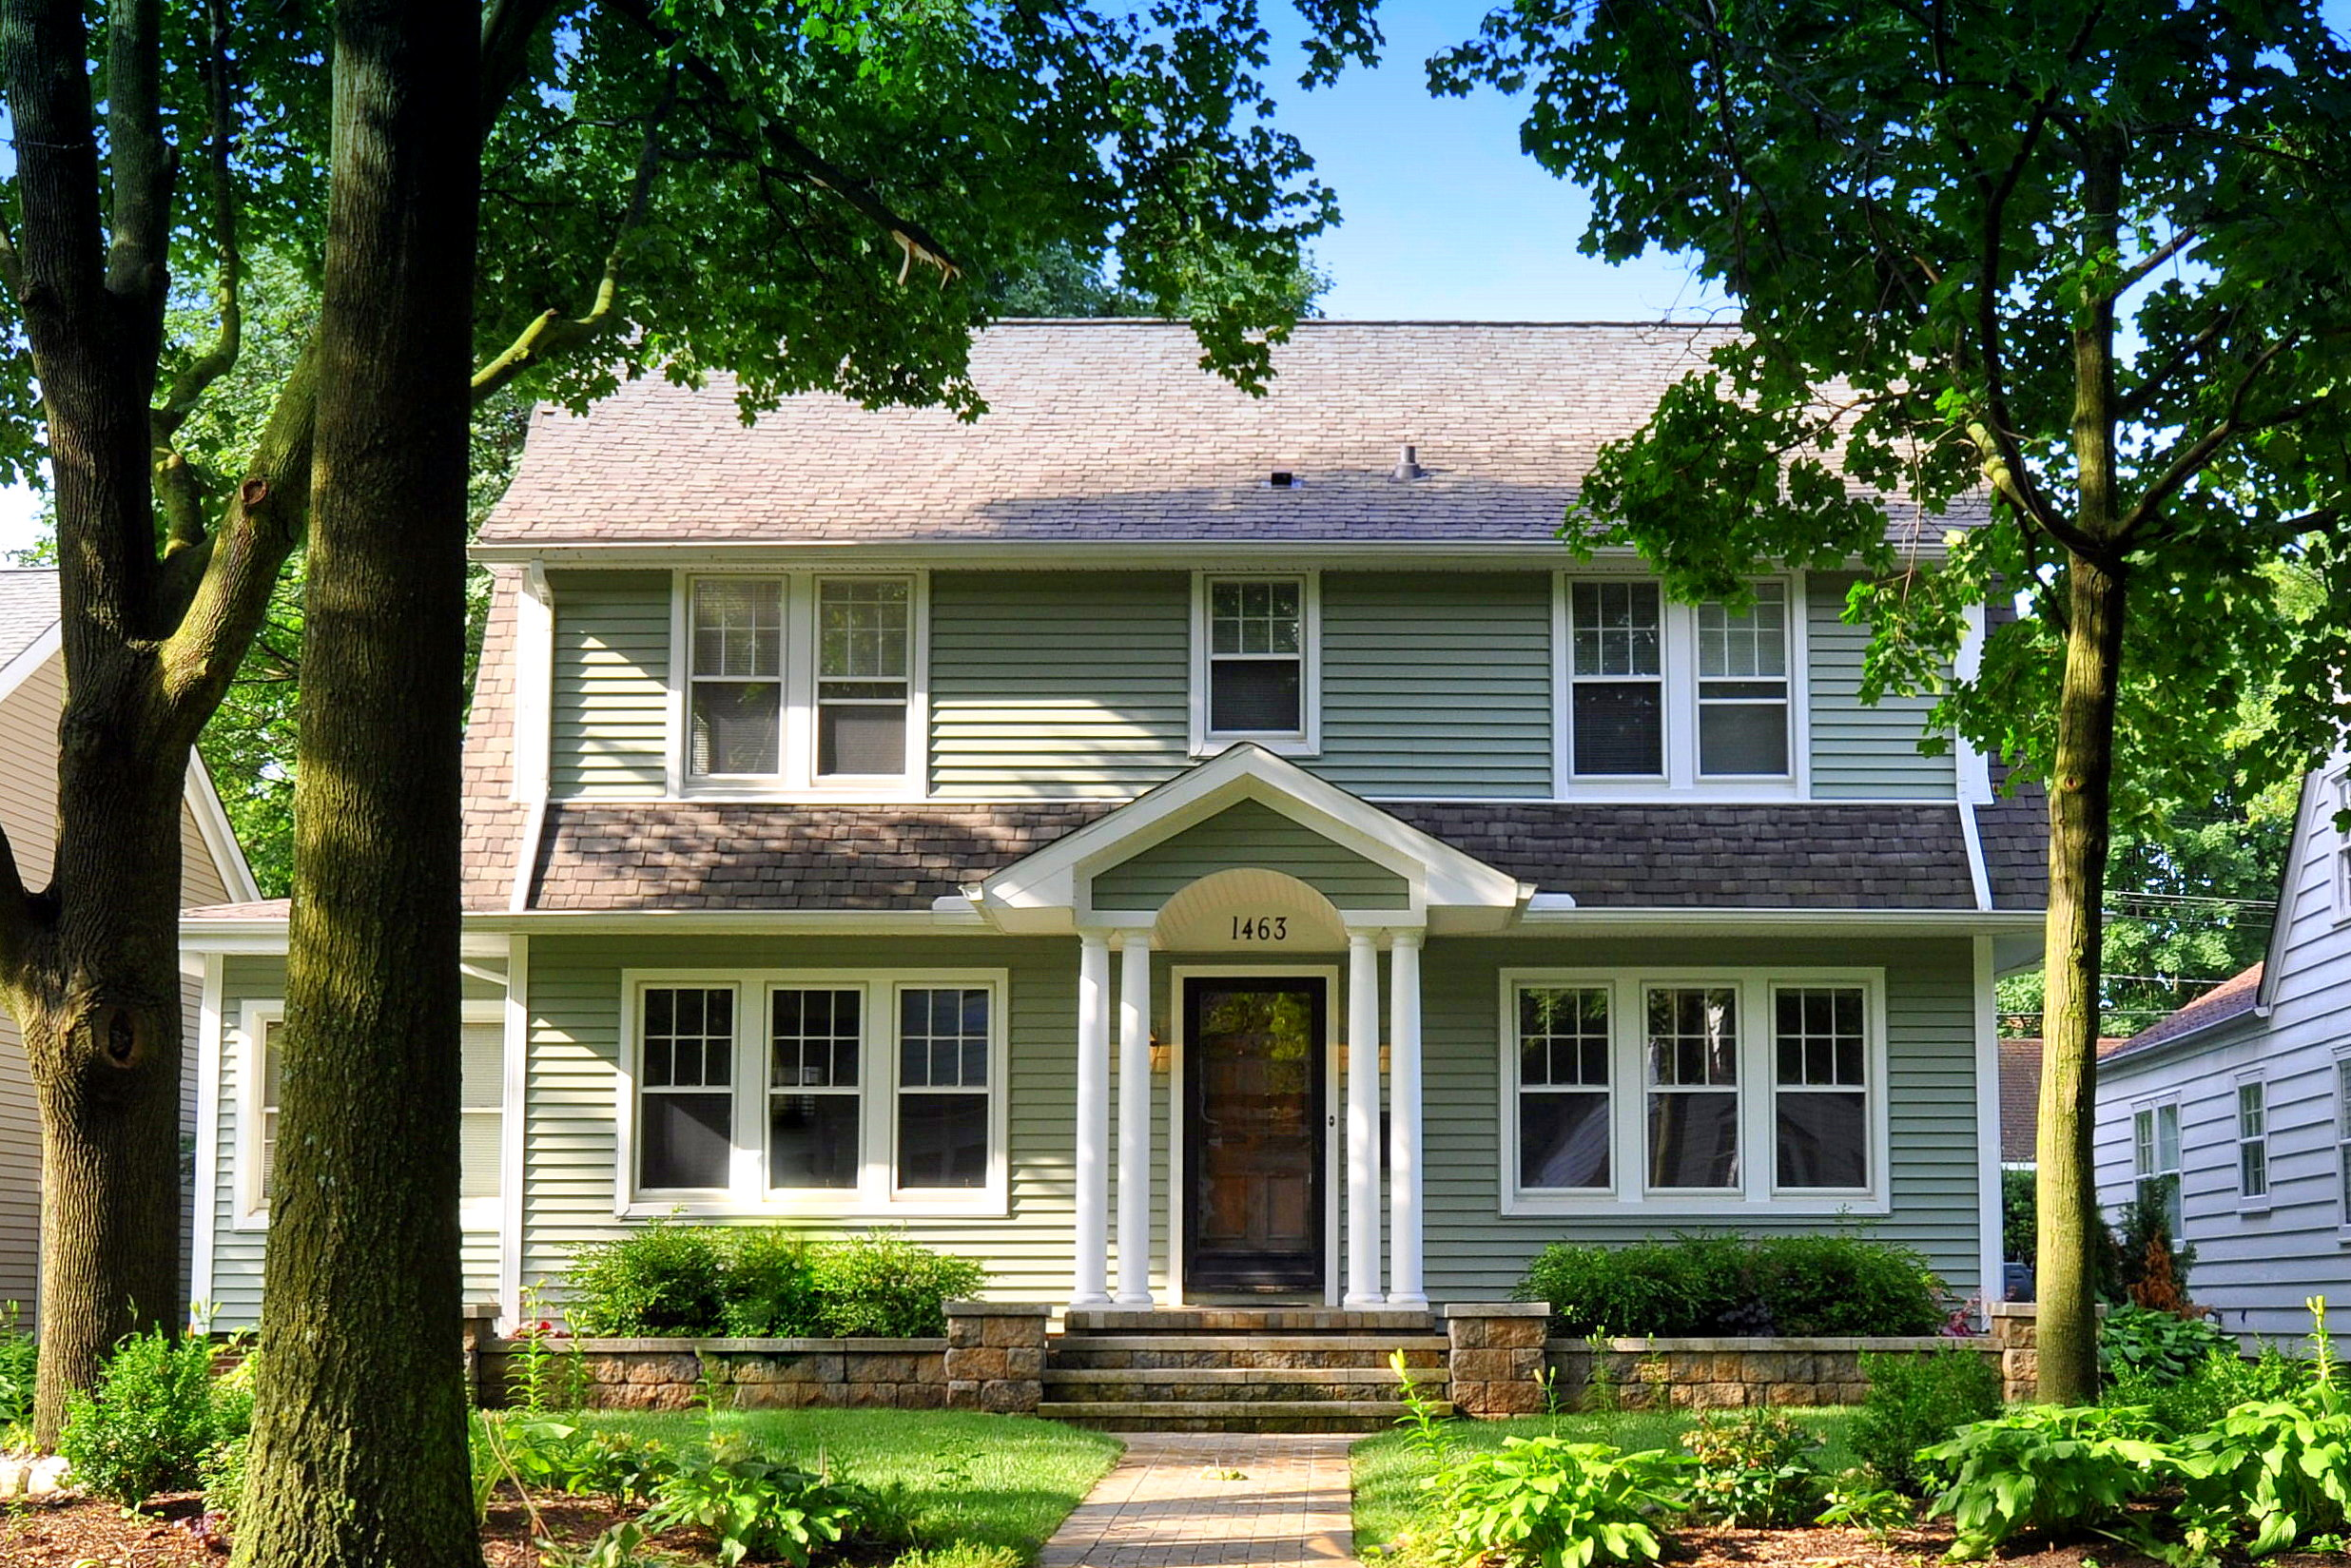 This home just sold 1463 sheridan city of plymouth updated and expanded dutch colonial on a for Updated colonial home exterior